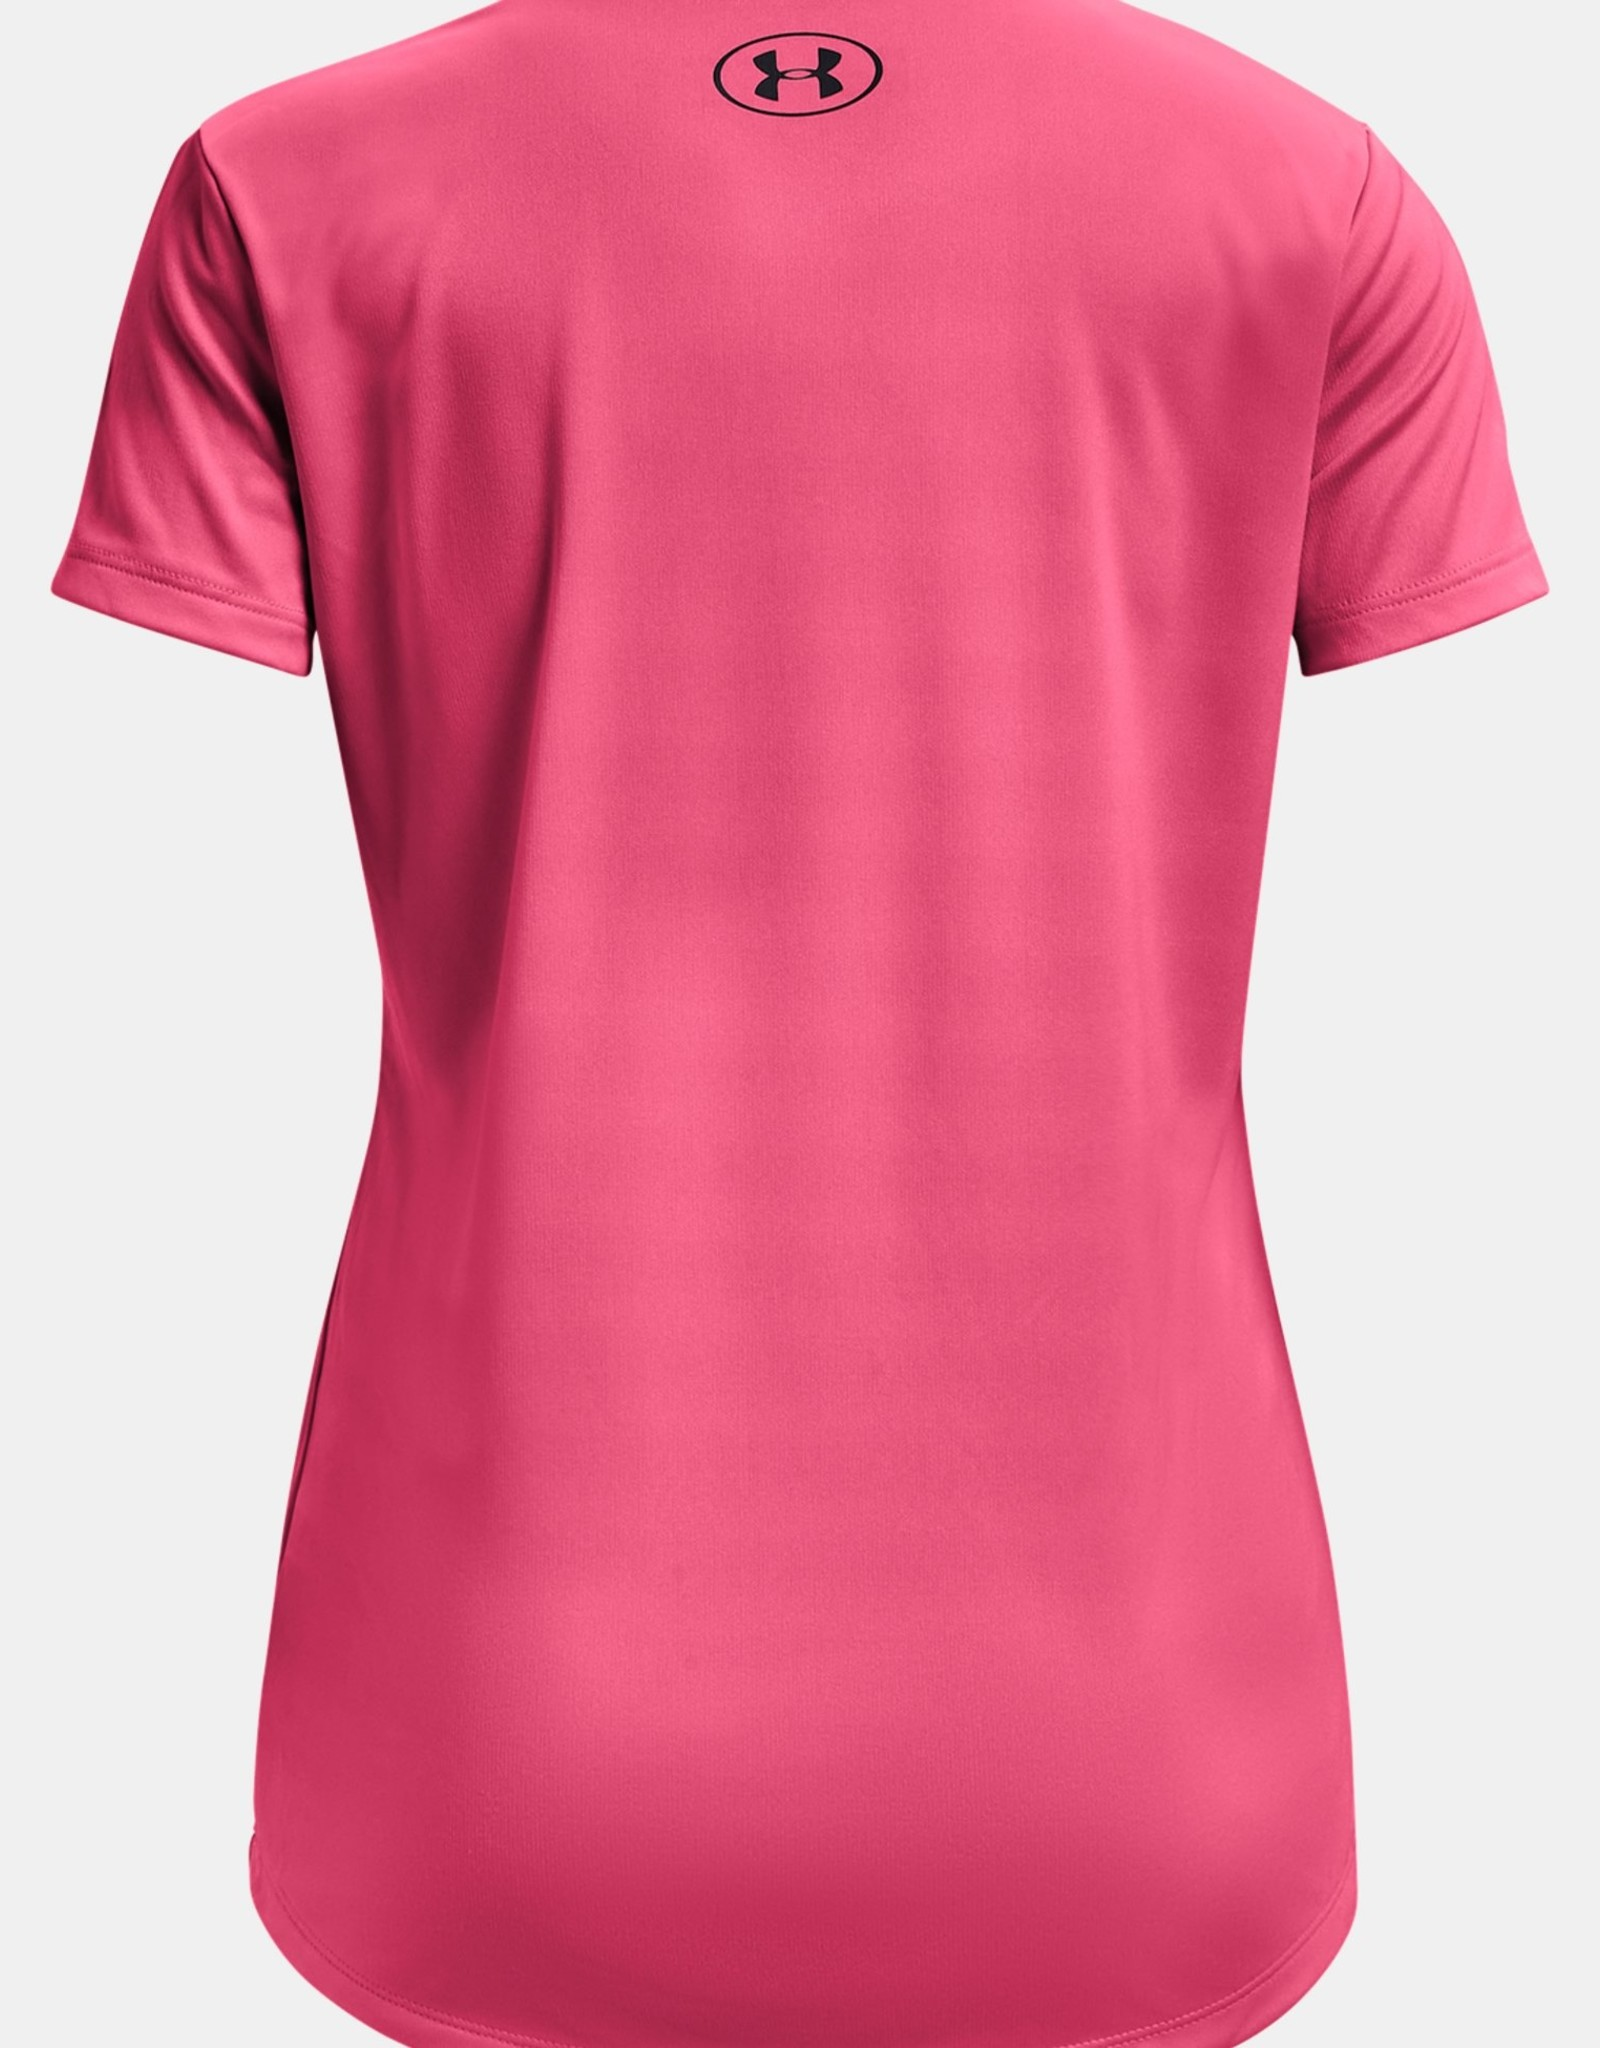 Under Armour TECH BL SOLID BODY SS